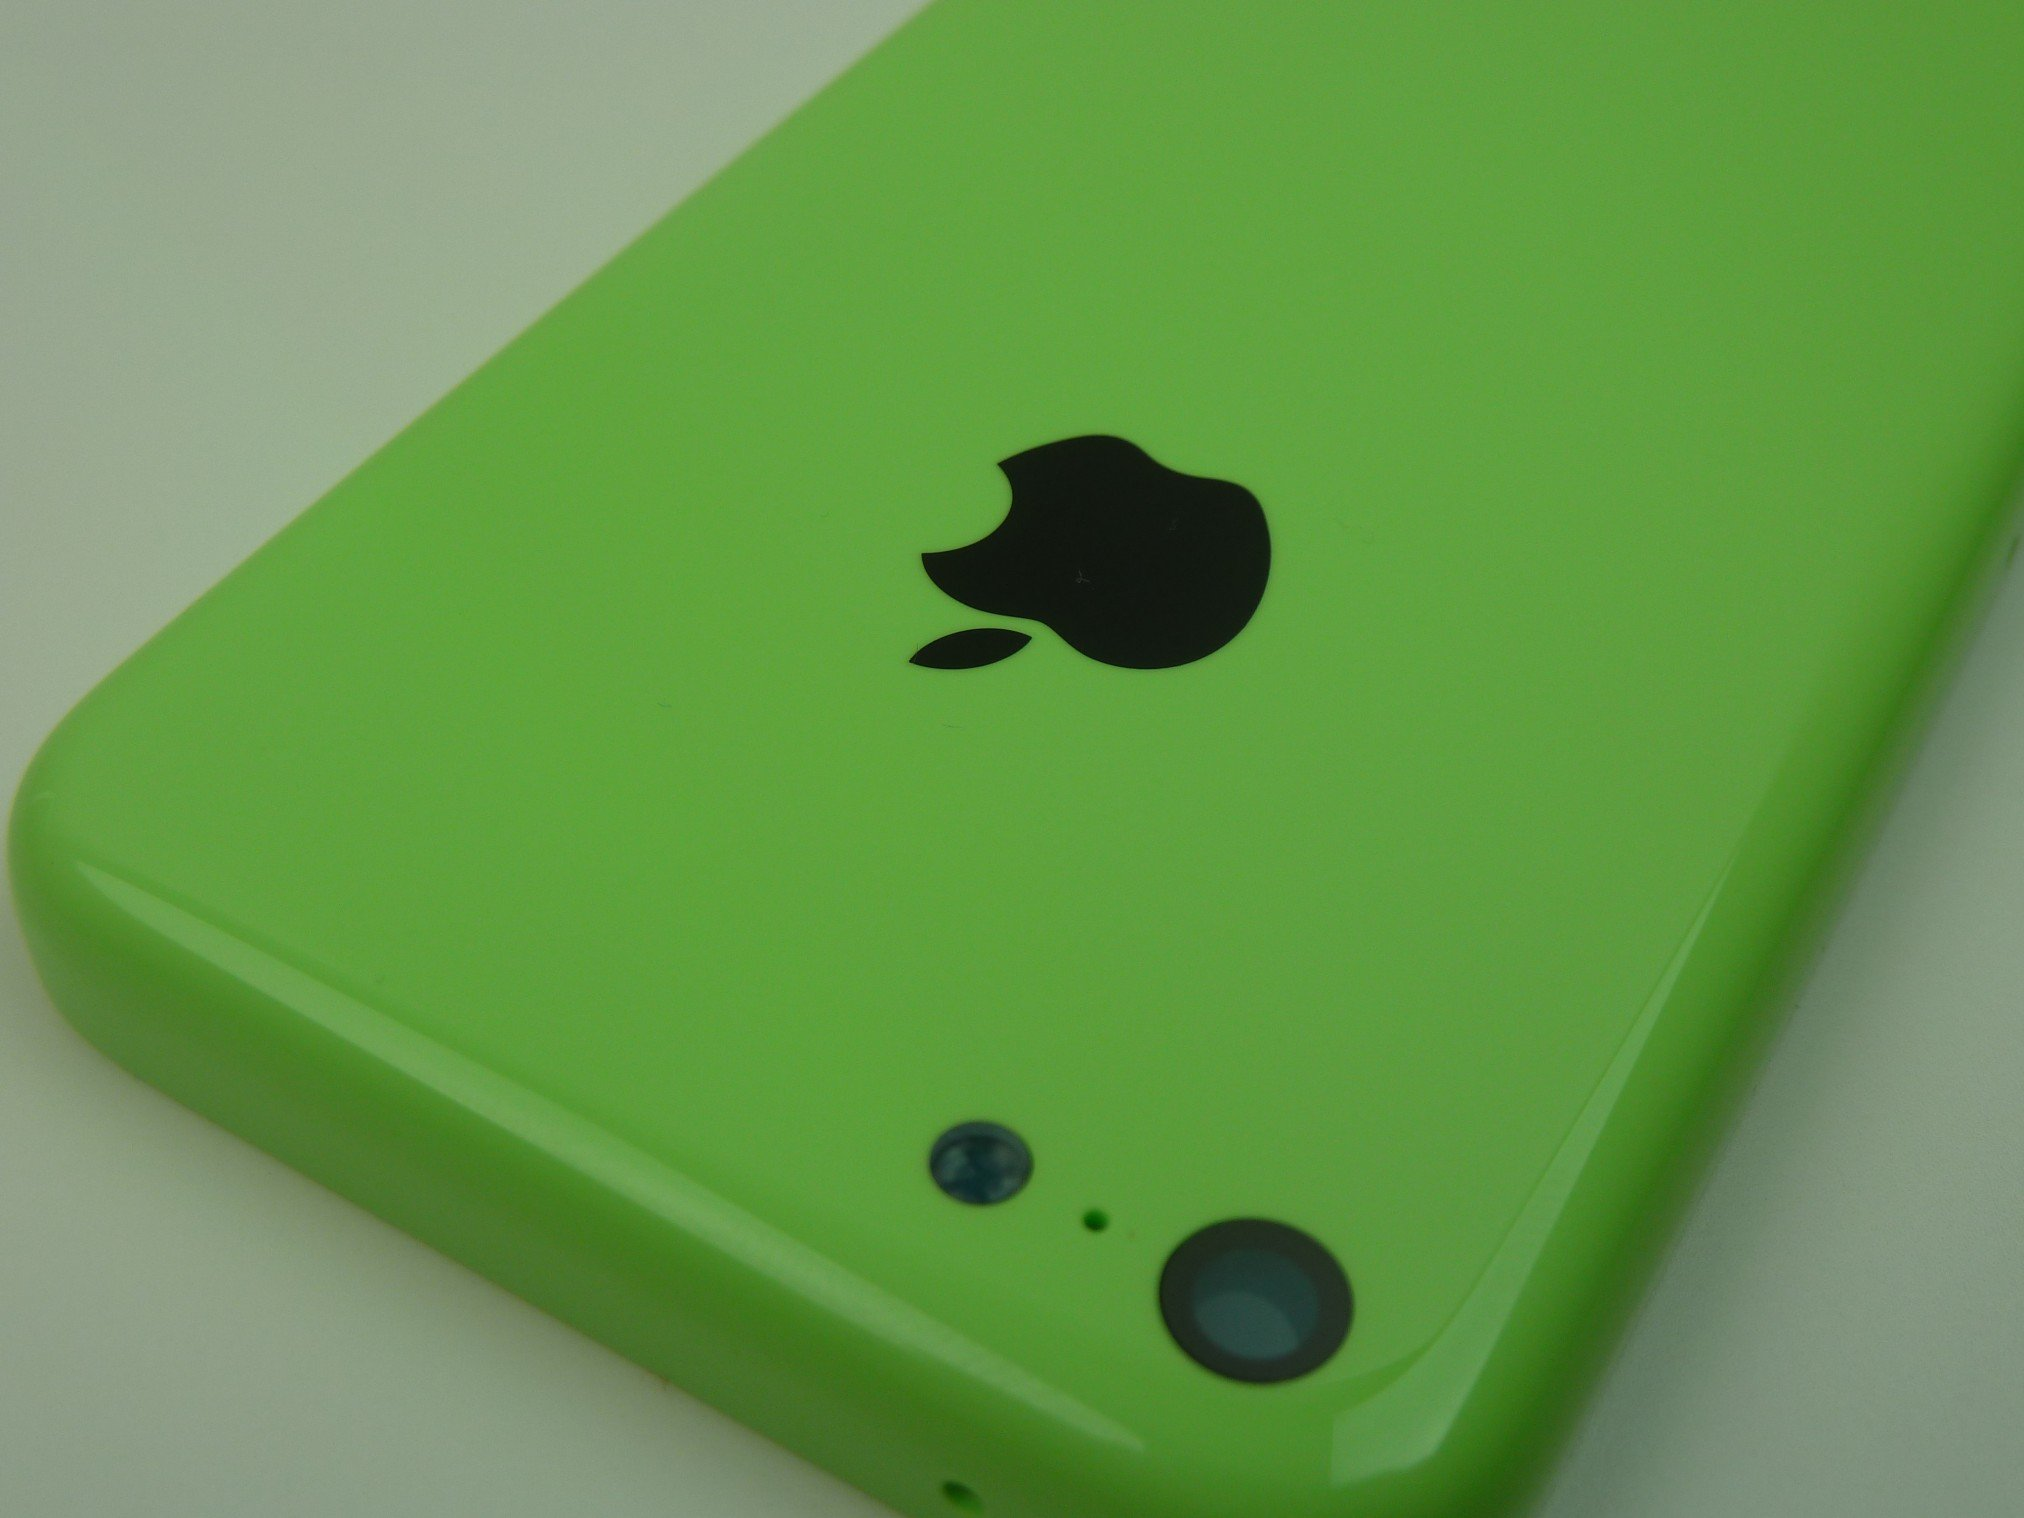 Good Wallpapers For Iphone 5c: Cute IPhone 5C Wallpapers